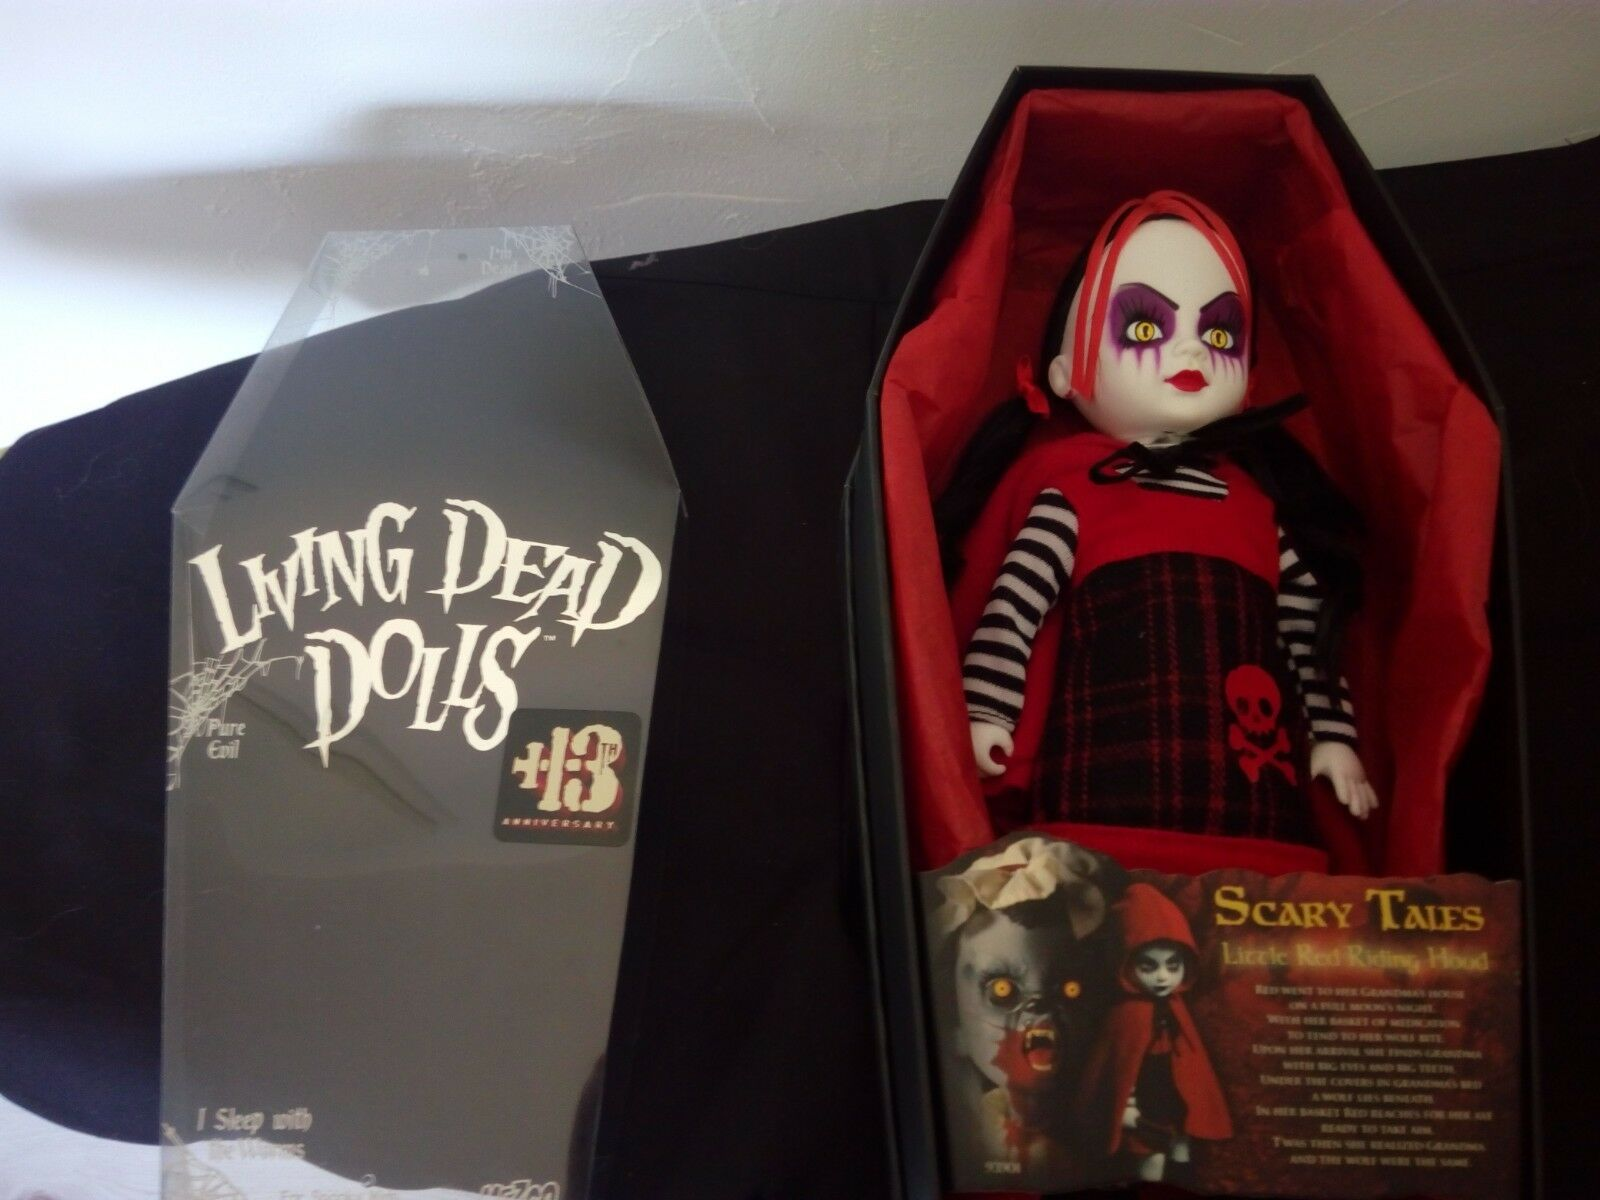 LIVING DEAD DOLLS SCARY TALES LE PETIT CHAPERON rot